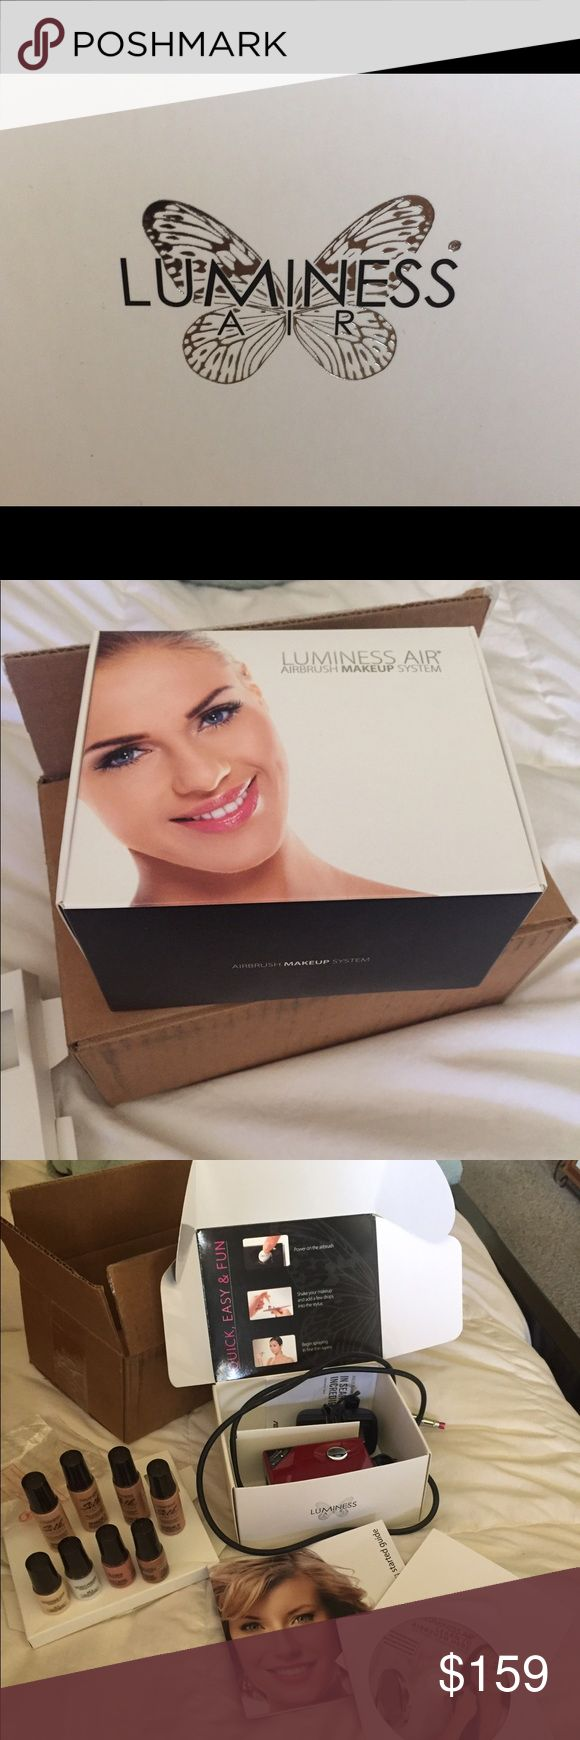 Luminess Air brush makeup! This is the whole package! I did use it to try it, now we have two. Passing great savings to you... includes the luminess airbrush machine, upgraded make-up for medium skin tone. All instructions are in original box. The machine alone is 300$, and the makeup was around 100$ for what I purchased. ( upgraded to silk). Application is easy and FLAWLESS! Fun and quick to use, you can mix for the right color for your foundation! Also comes with blush, bronzer…